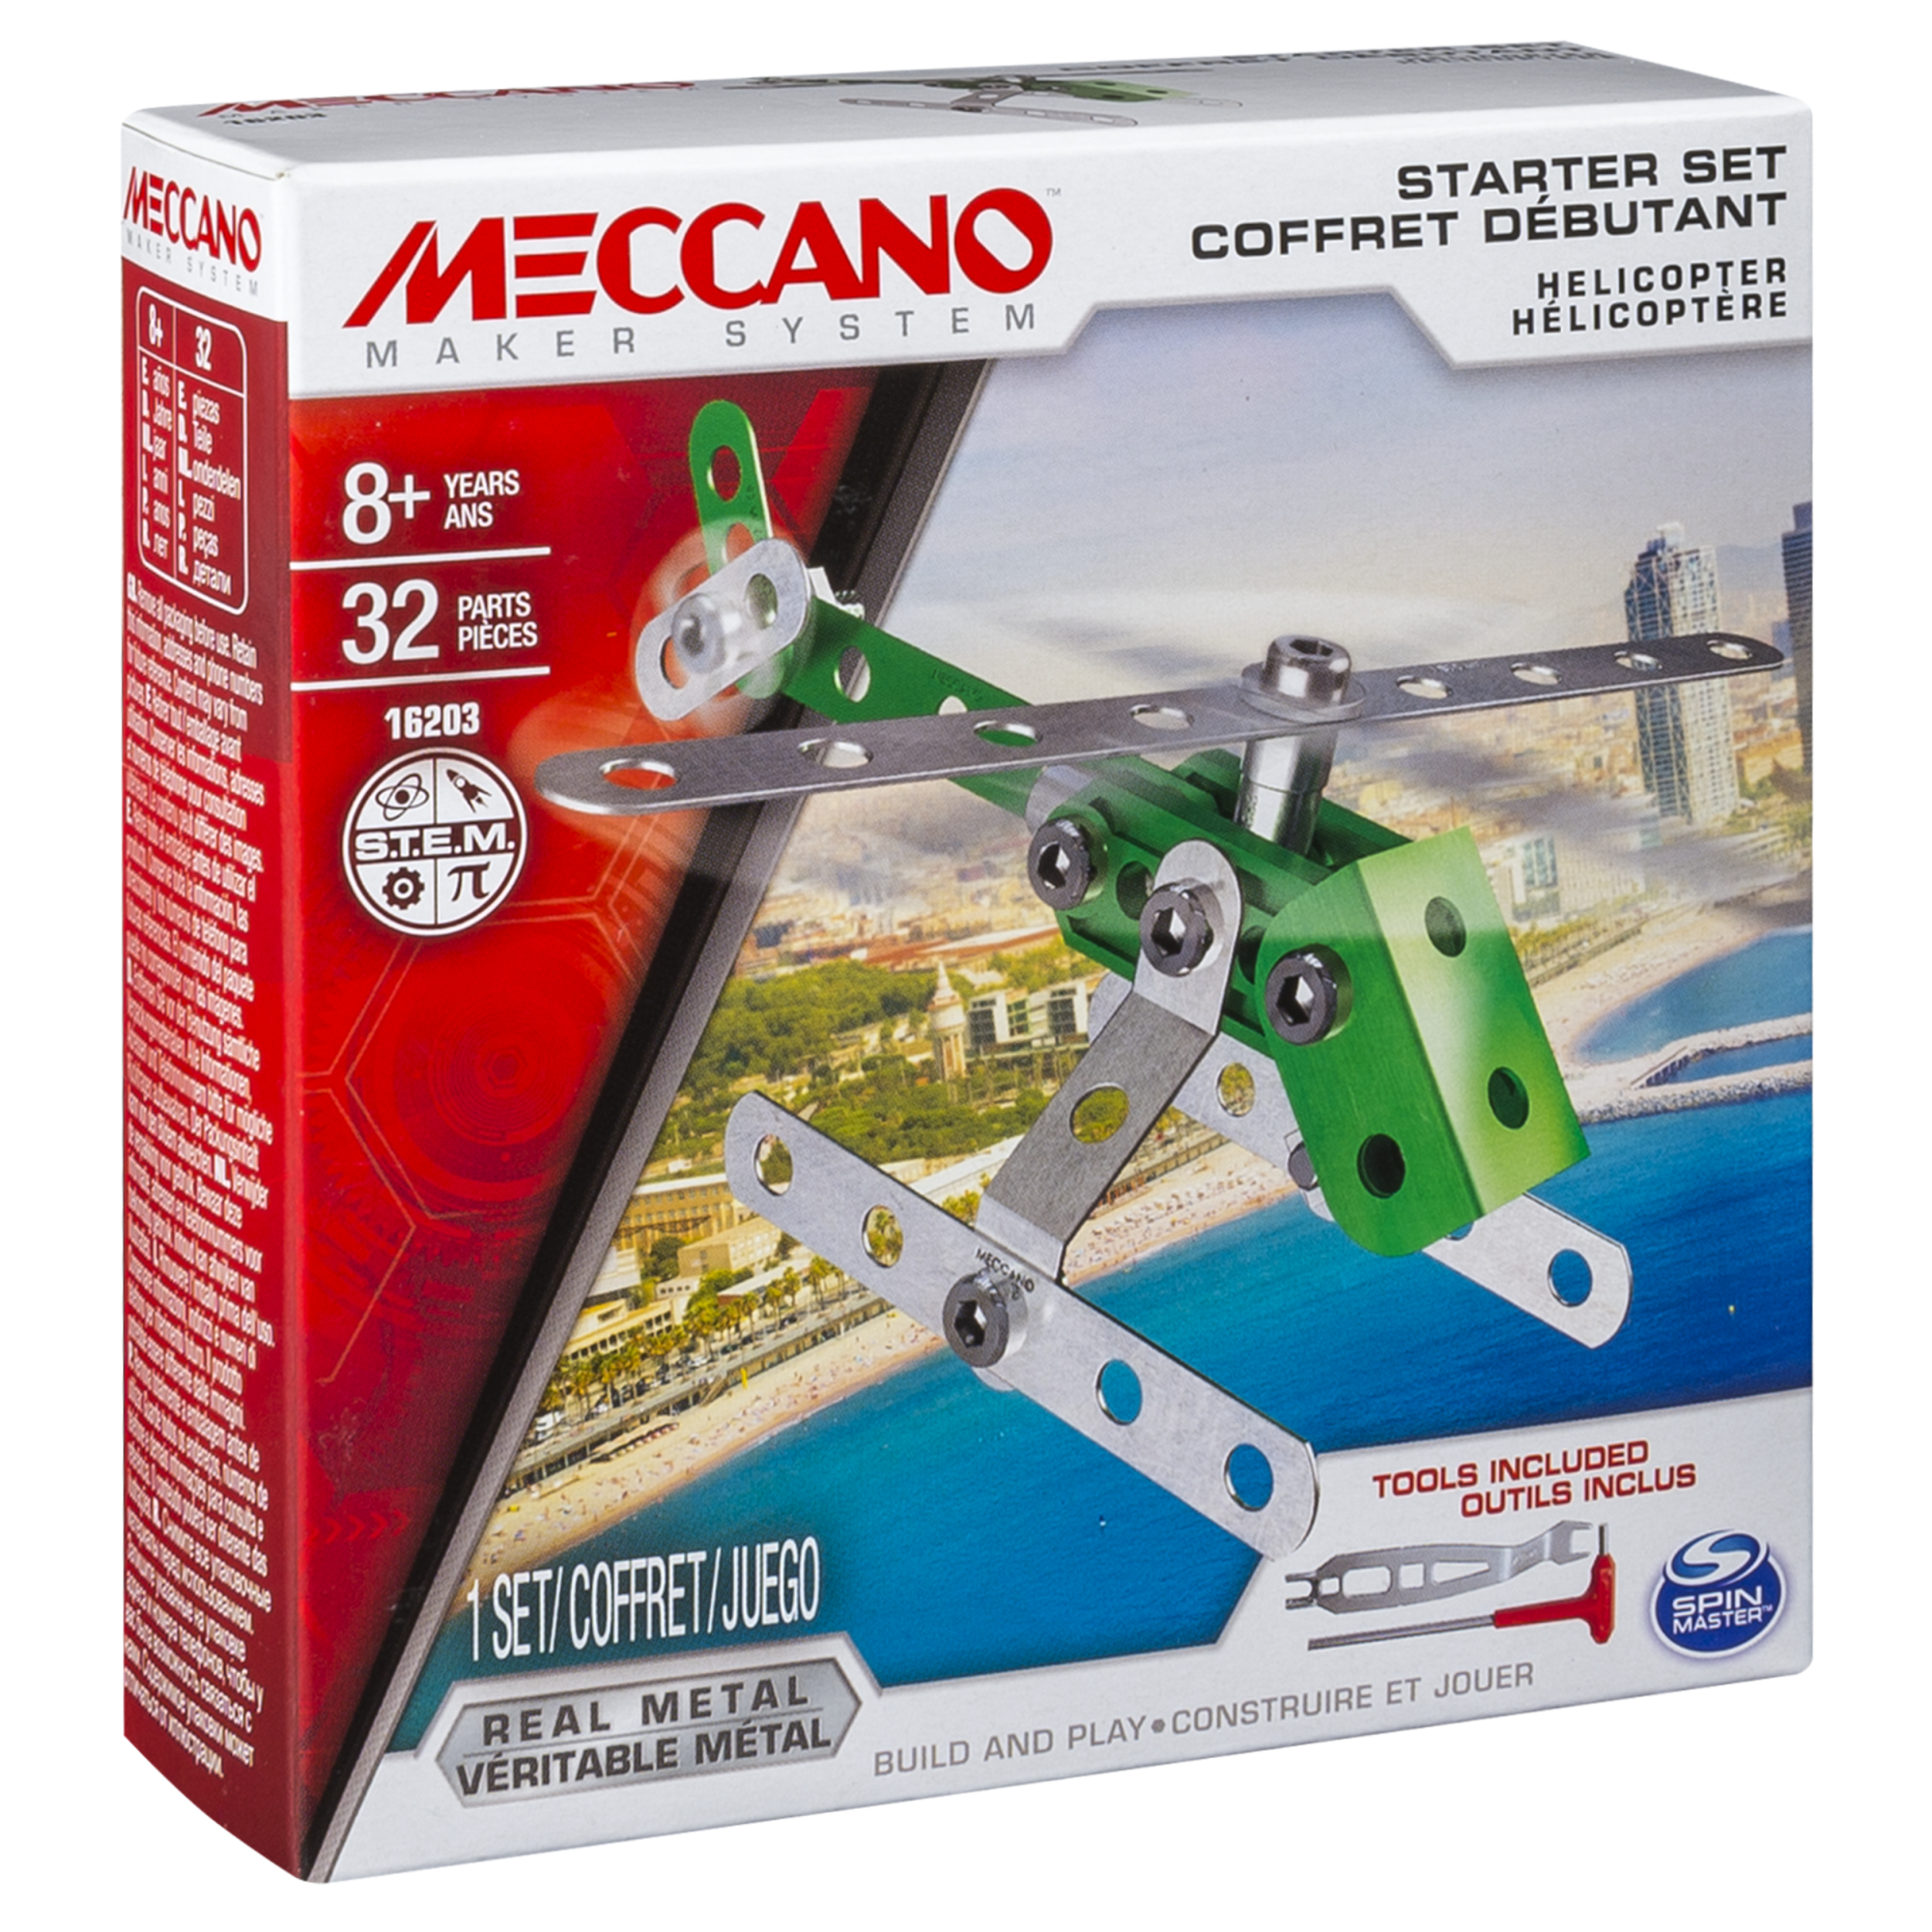 Helicopter Meccano Kids Metal Construction Toy Design Starter Kit NEW